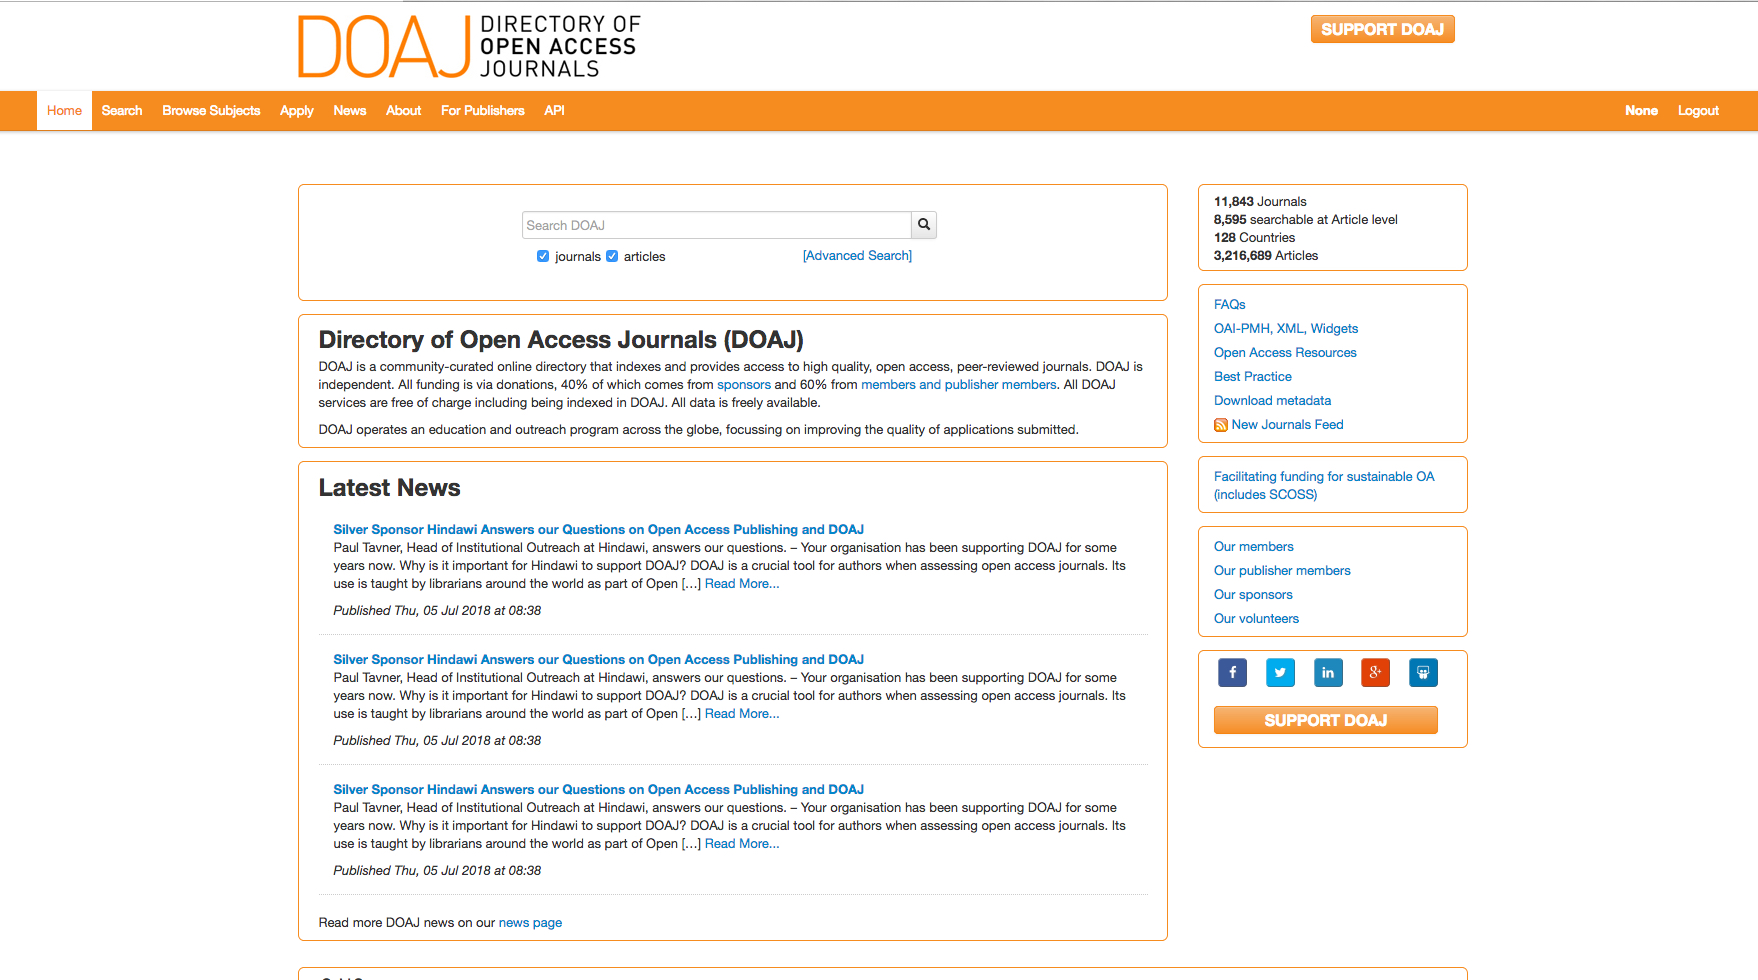 Le Directory of Open Access Journals (DOAJ.org).